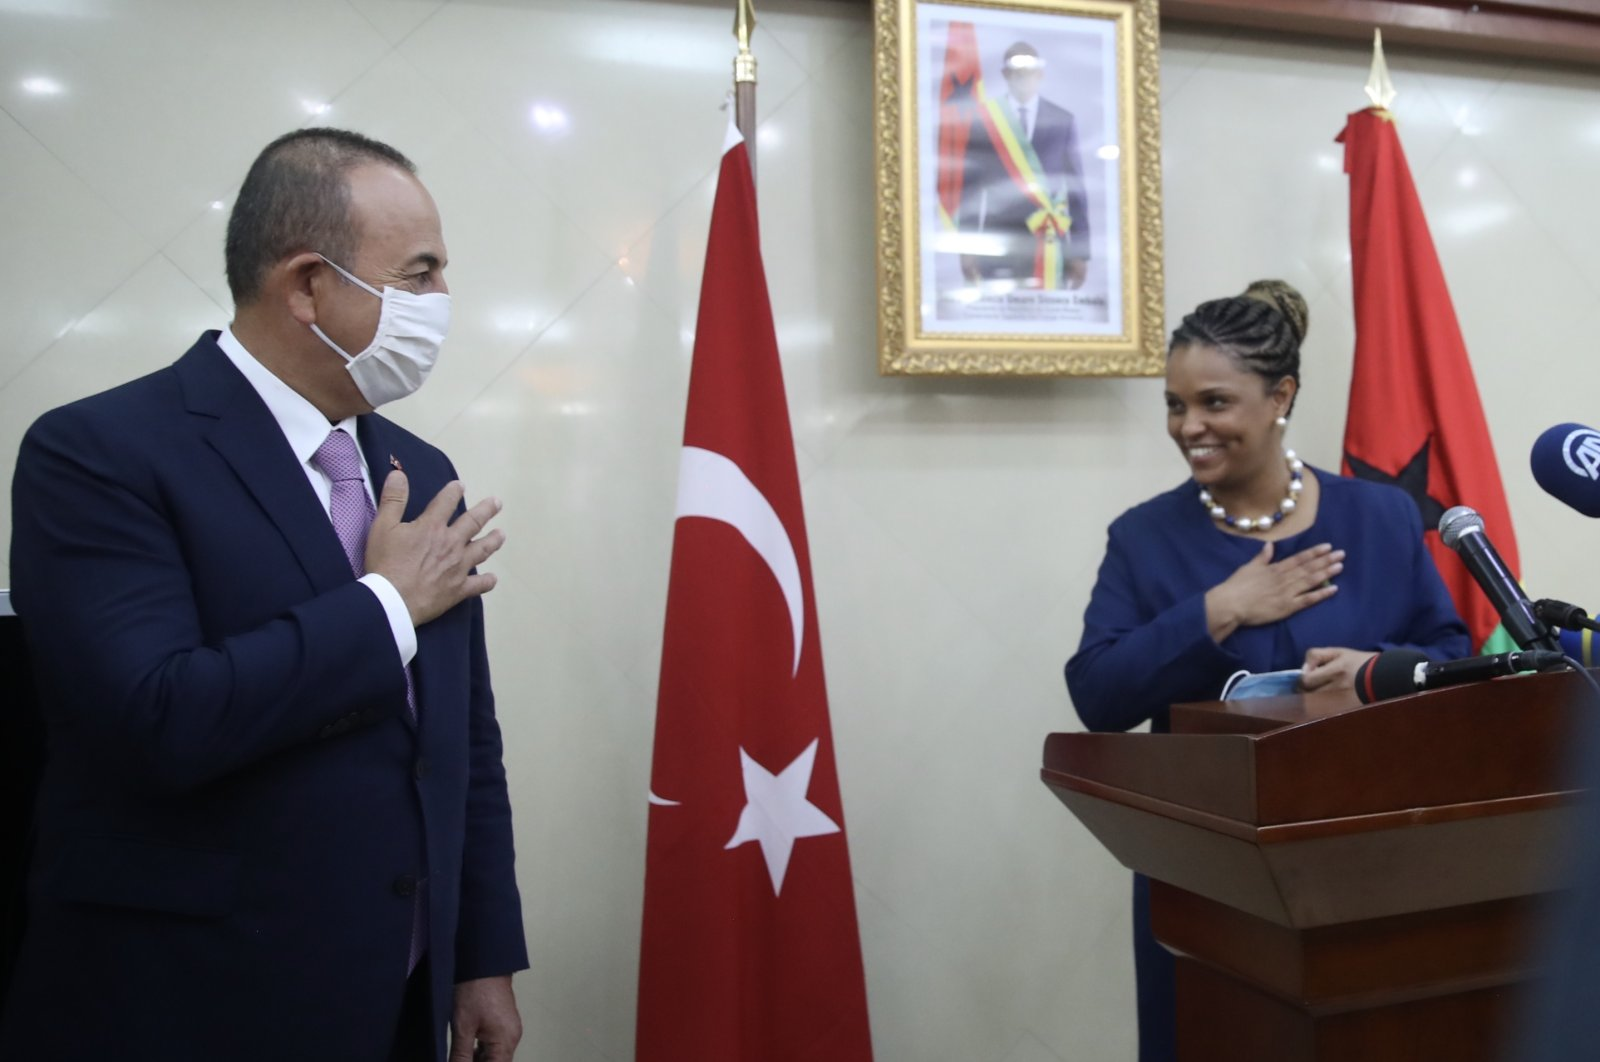 Turkey's Foreign Minister Mevlüt Çavuşoğlu and his counterpart Suzi Carla Barbosa during a joint news conference in Bissau, Guinea-Bissau, Sept. 10, 2020. (AA Photo)